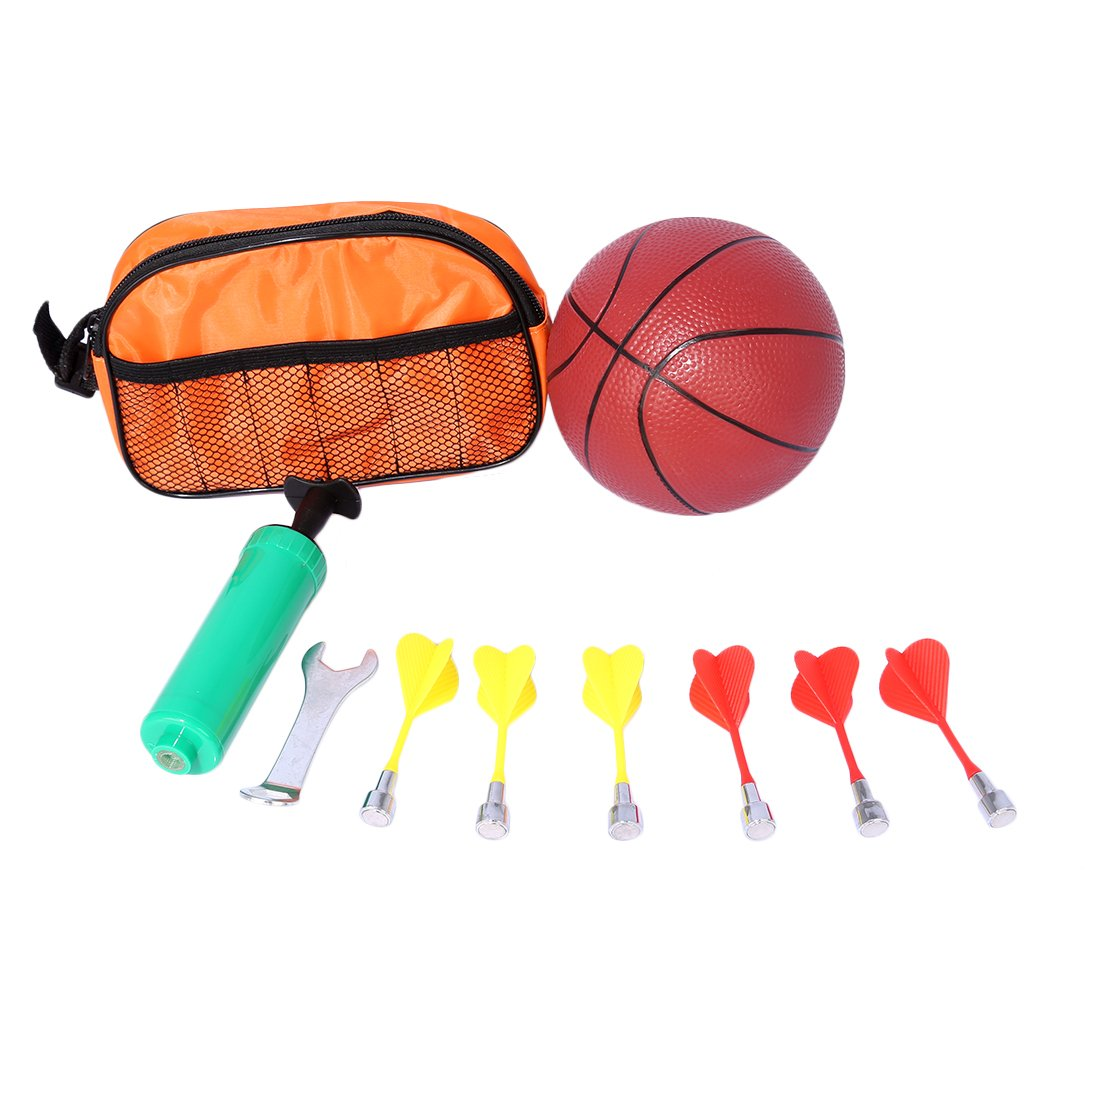 Basketball Stands PINCHUANGHUI 2-in-1 Standing Darts and Basketball Stands Kids Teenagers Goal Hoop Shooting Toy Set by PINCHUANGHUI (Image #3)